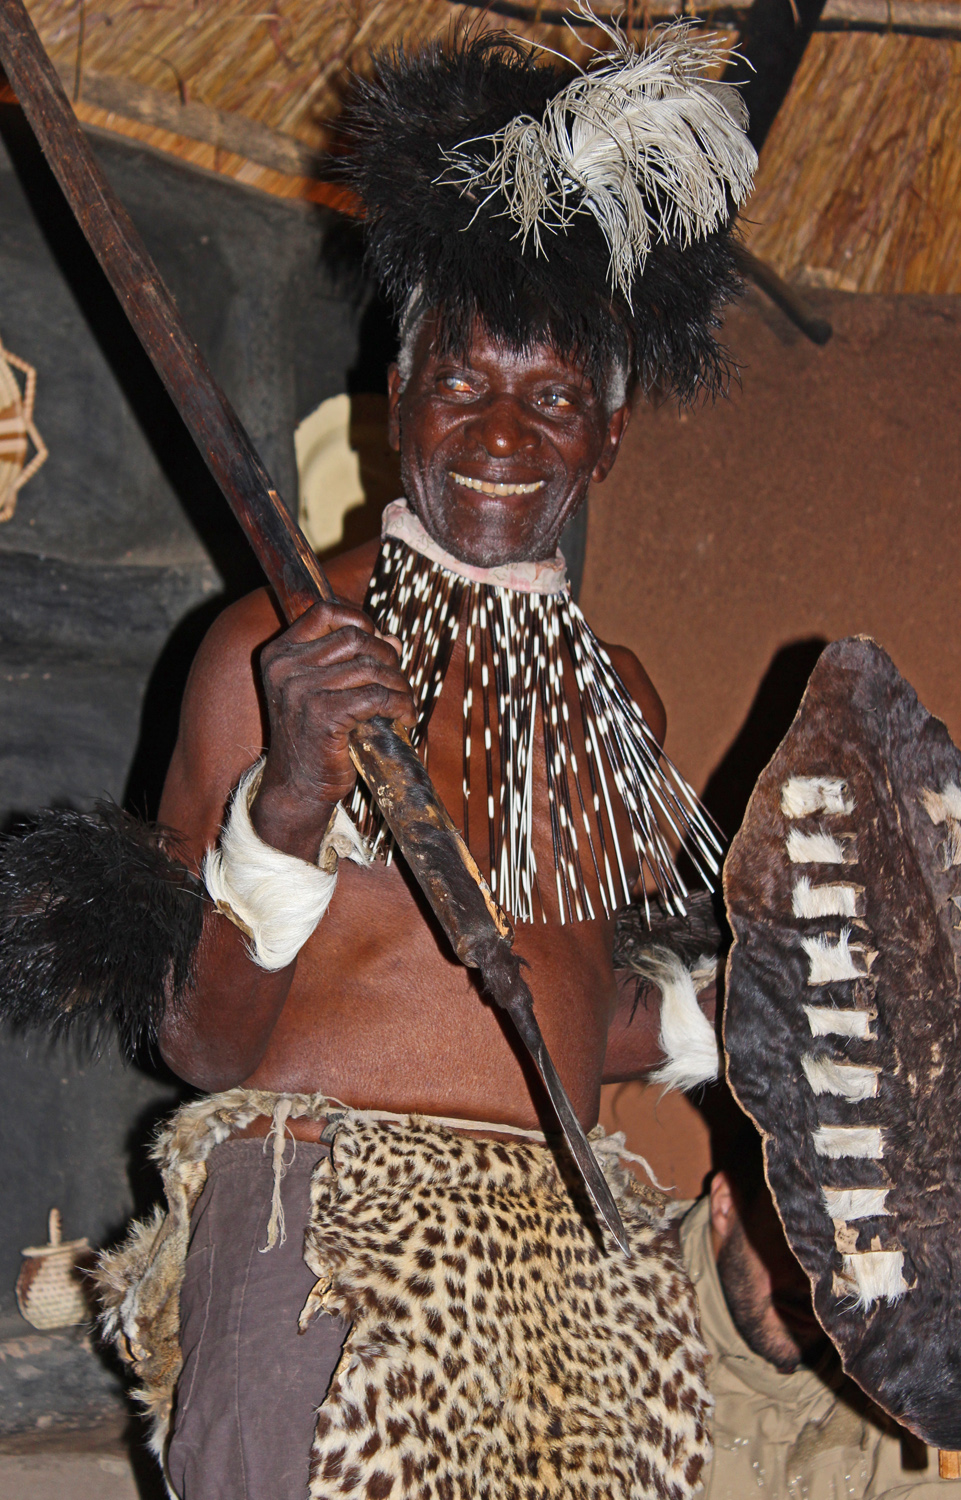 African Village Chief in Zimbabwe